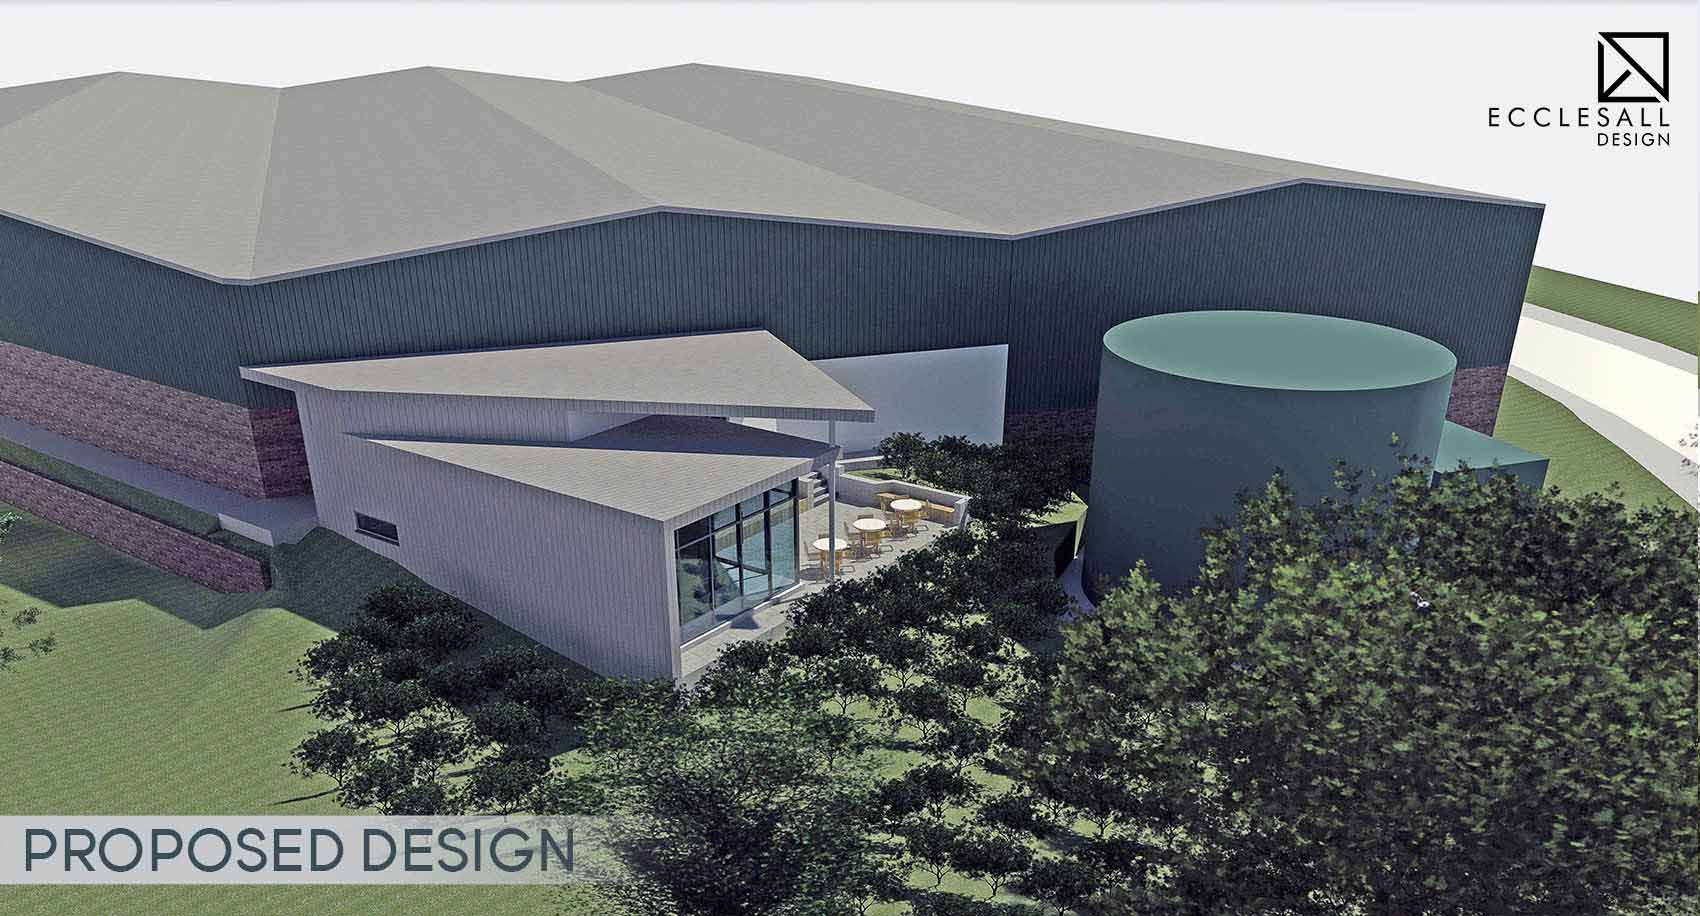 Commercial Property Permitted Development Ecclesall Design